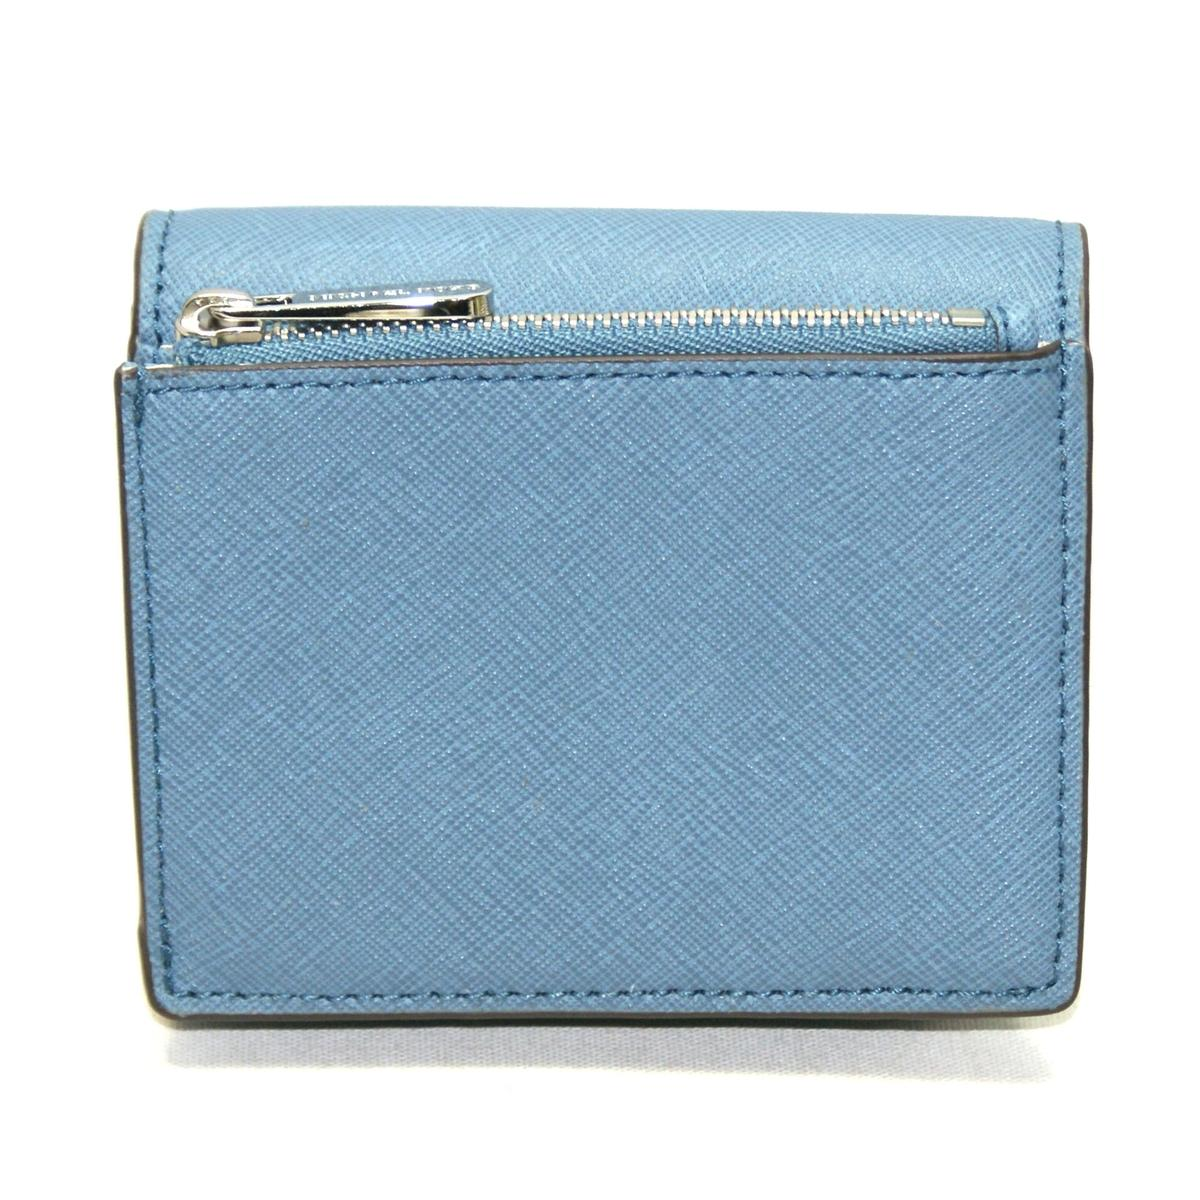 91c8f310379d Home · Michael Kors · Jet Set Travel Carryall Card Case Leather Small Wallet  Denim. CLICK THUMBNAIL TO ZOOM. Found In  Handbags